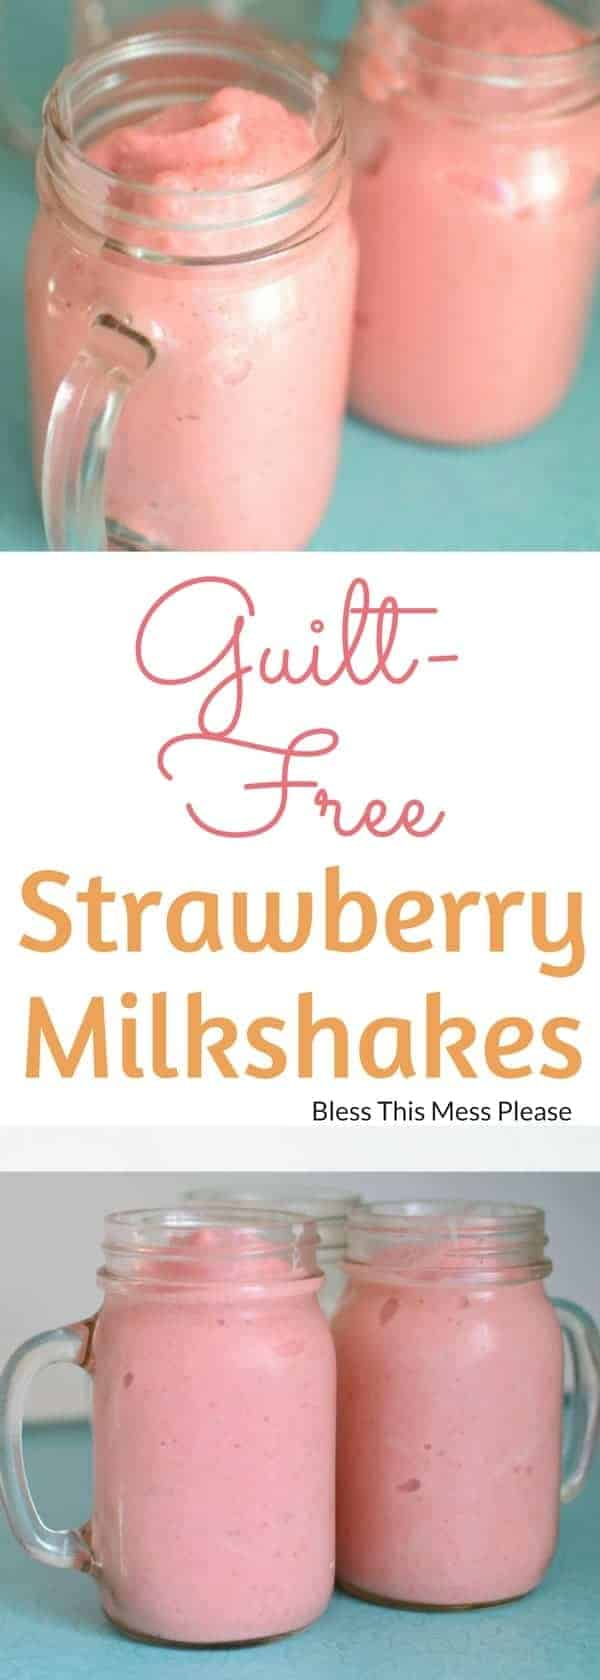 Guilt-Free Strawberry Milkshakes